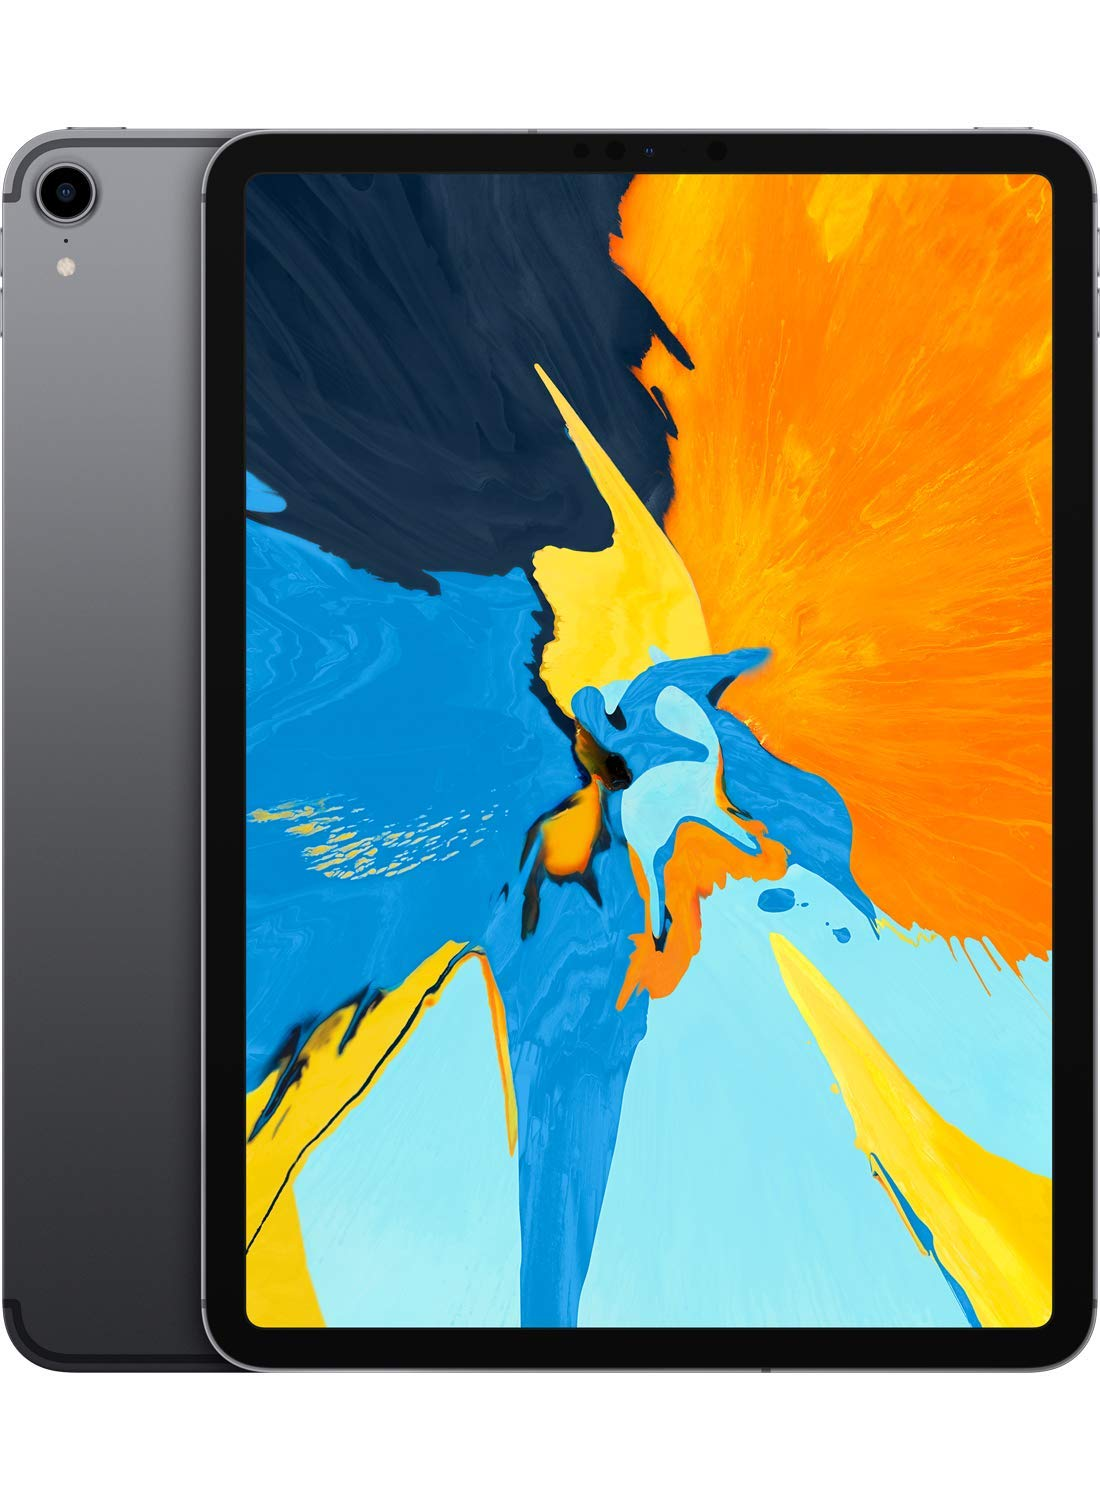 Apple iPad Pro: Premium performance for all purposes